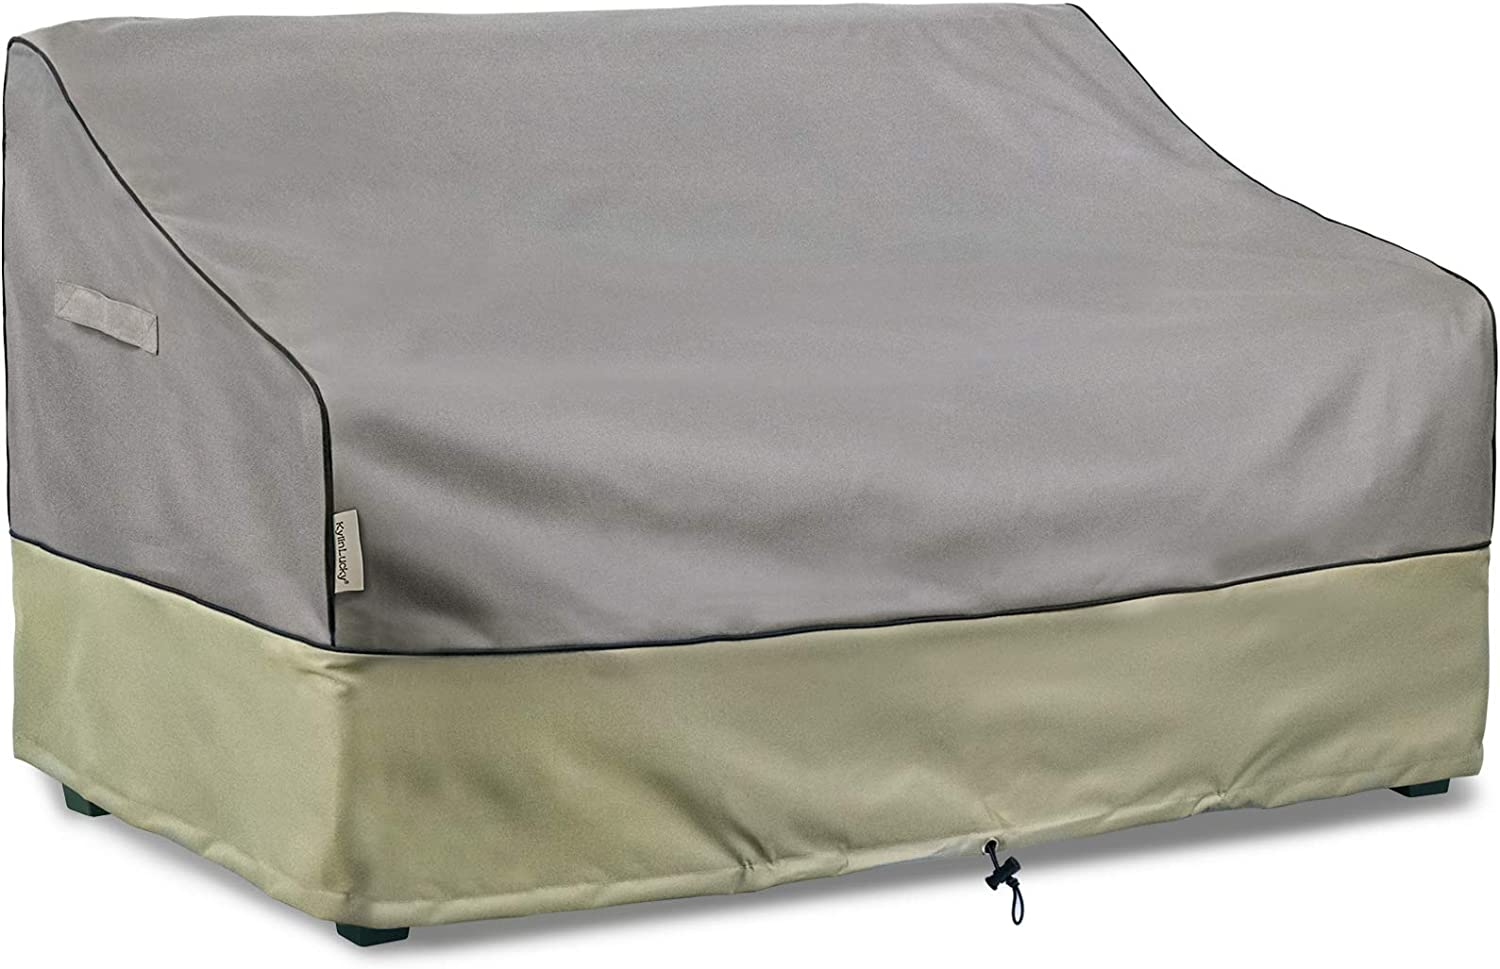 KylinLucky Outdoor Furniture Covers Waterproof, 2-Seater Patio Sofa Covers Fits up to 52W x 32D x 34H inches